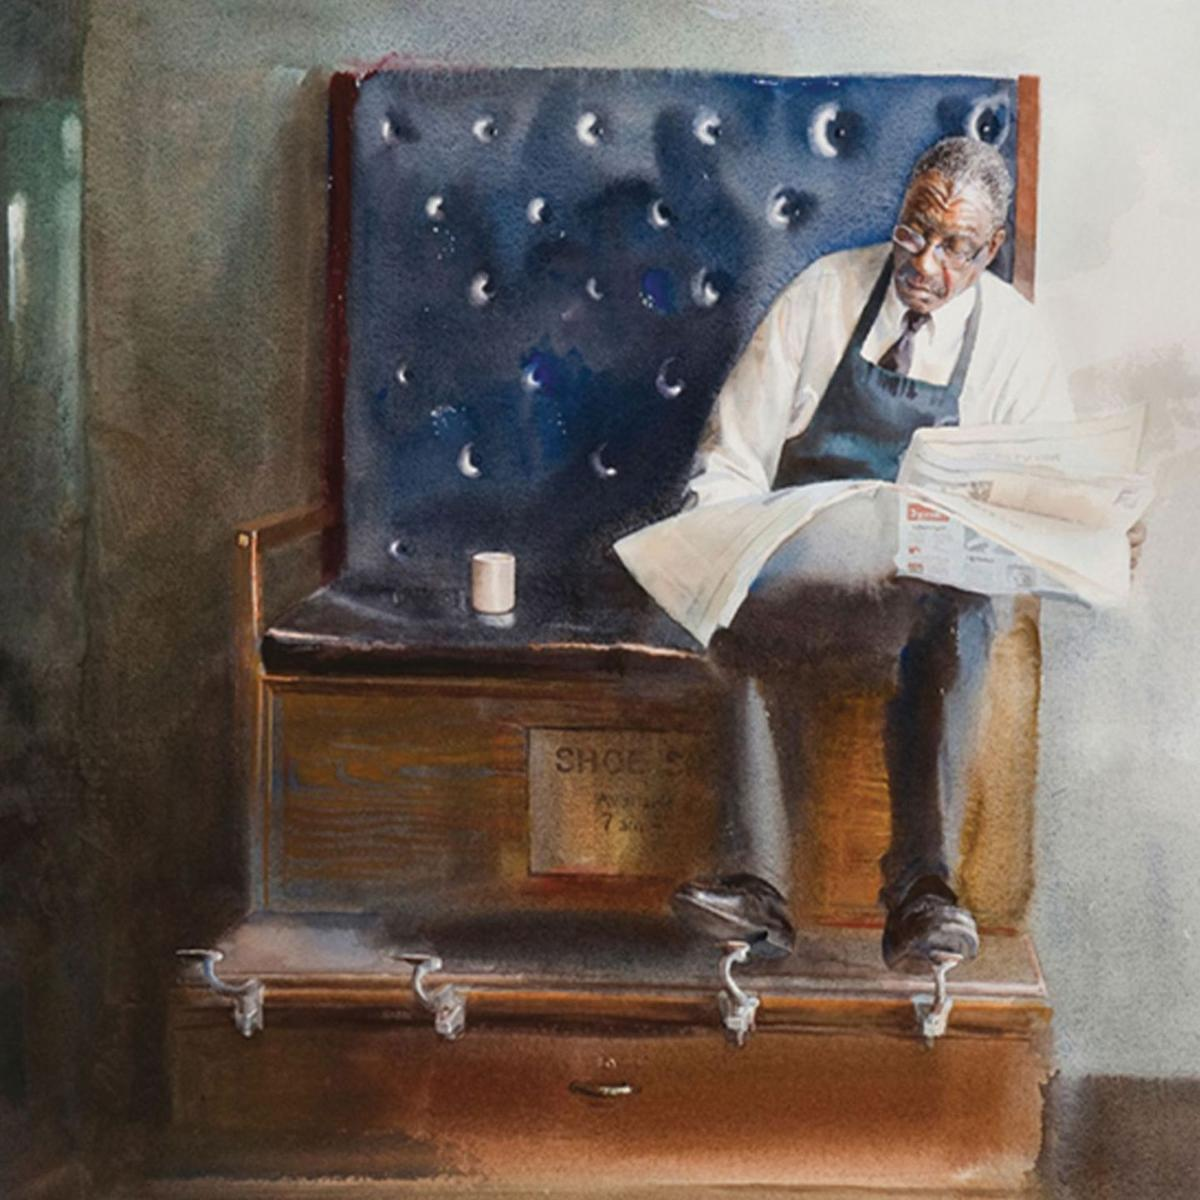 Gibbes exhibits, Piccolo preview among arts events